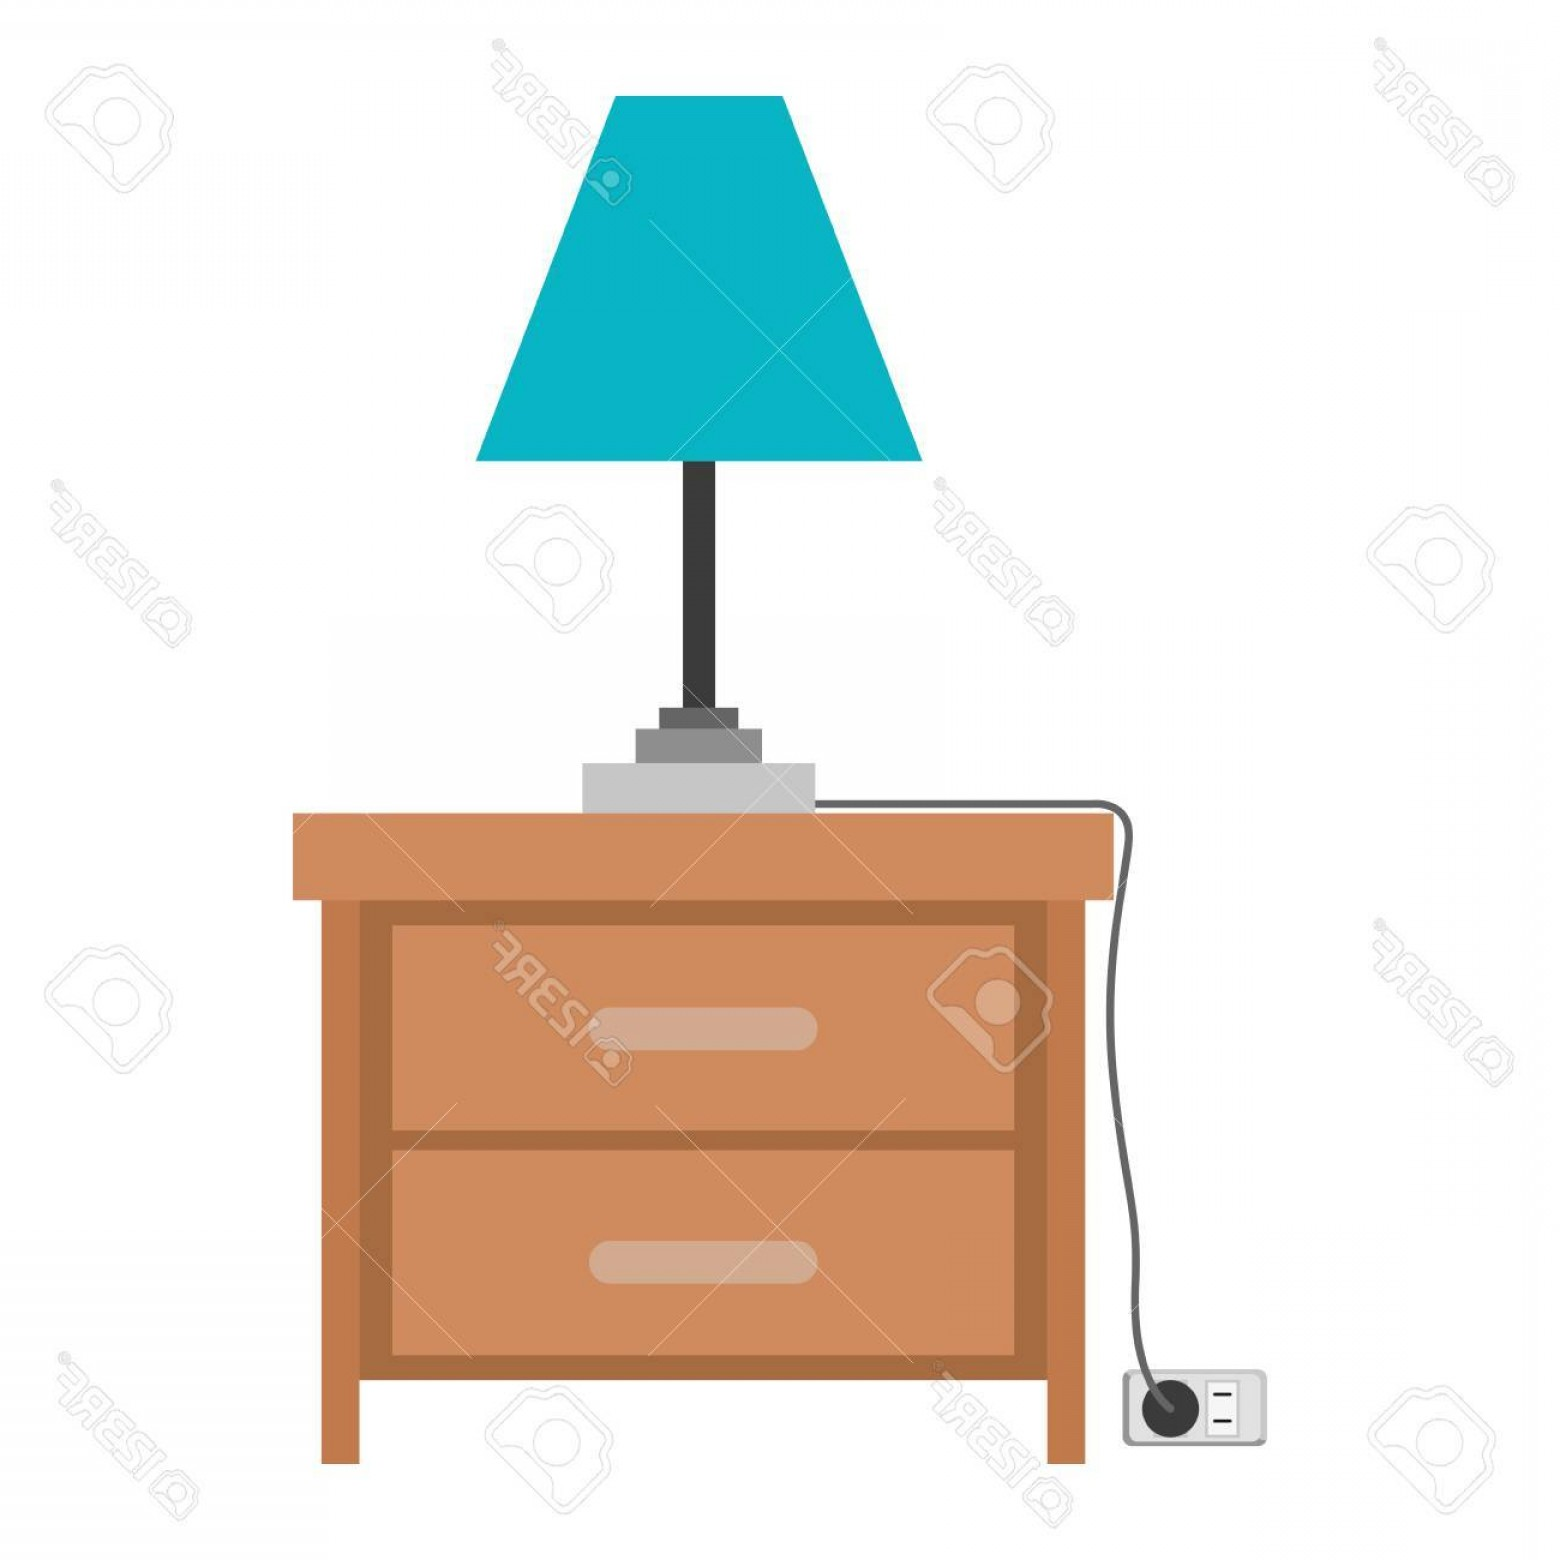 D Night Stanf Vector Graphic: Photostock Vector Nightstand With Lamp In Colorful Silhouette On White Background Vector Illustration